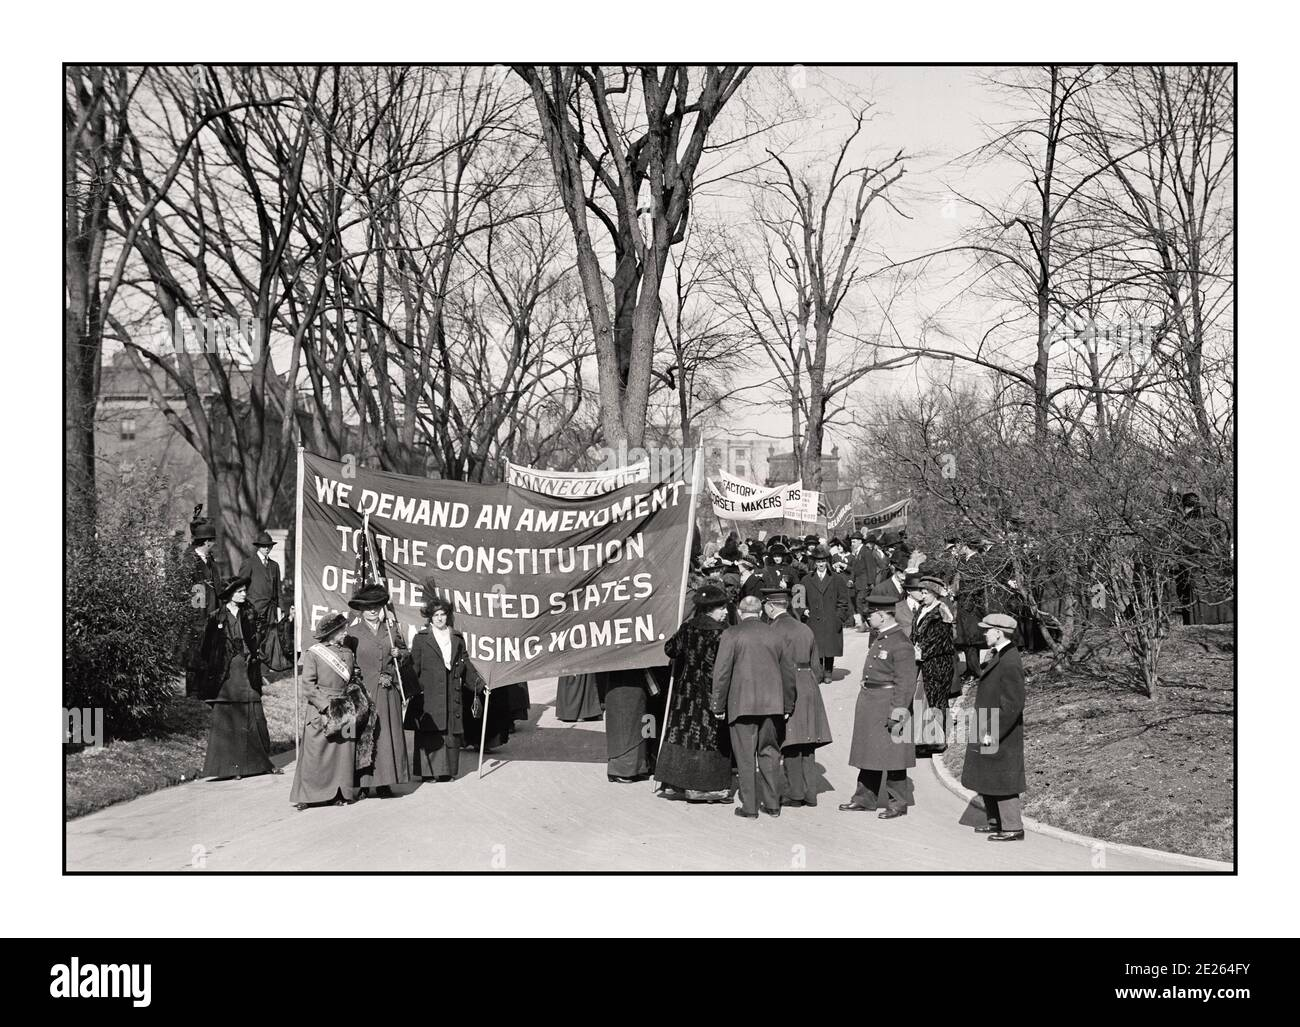 """1914 Suffragette movement, Women's suffrage, under the banner """"Votes for Women"""", which began in the mid-19th century, culminated in victory with the ratification of the 19th Amendment to the Constitution on Aug. 19, 1920.  SUFFRAGE CONNECTICUT USA 1914 Stock Photo"""